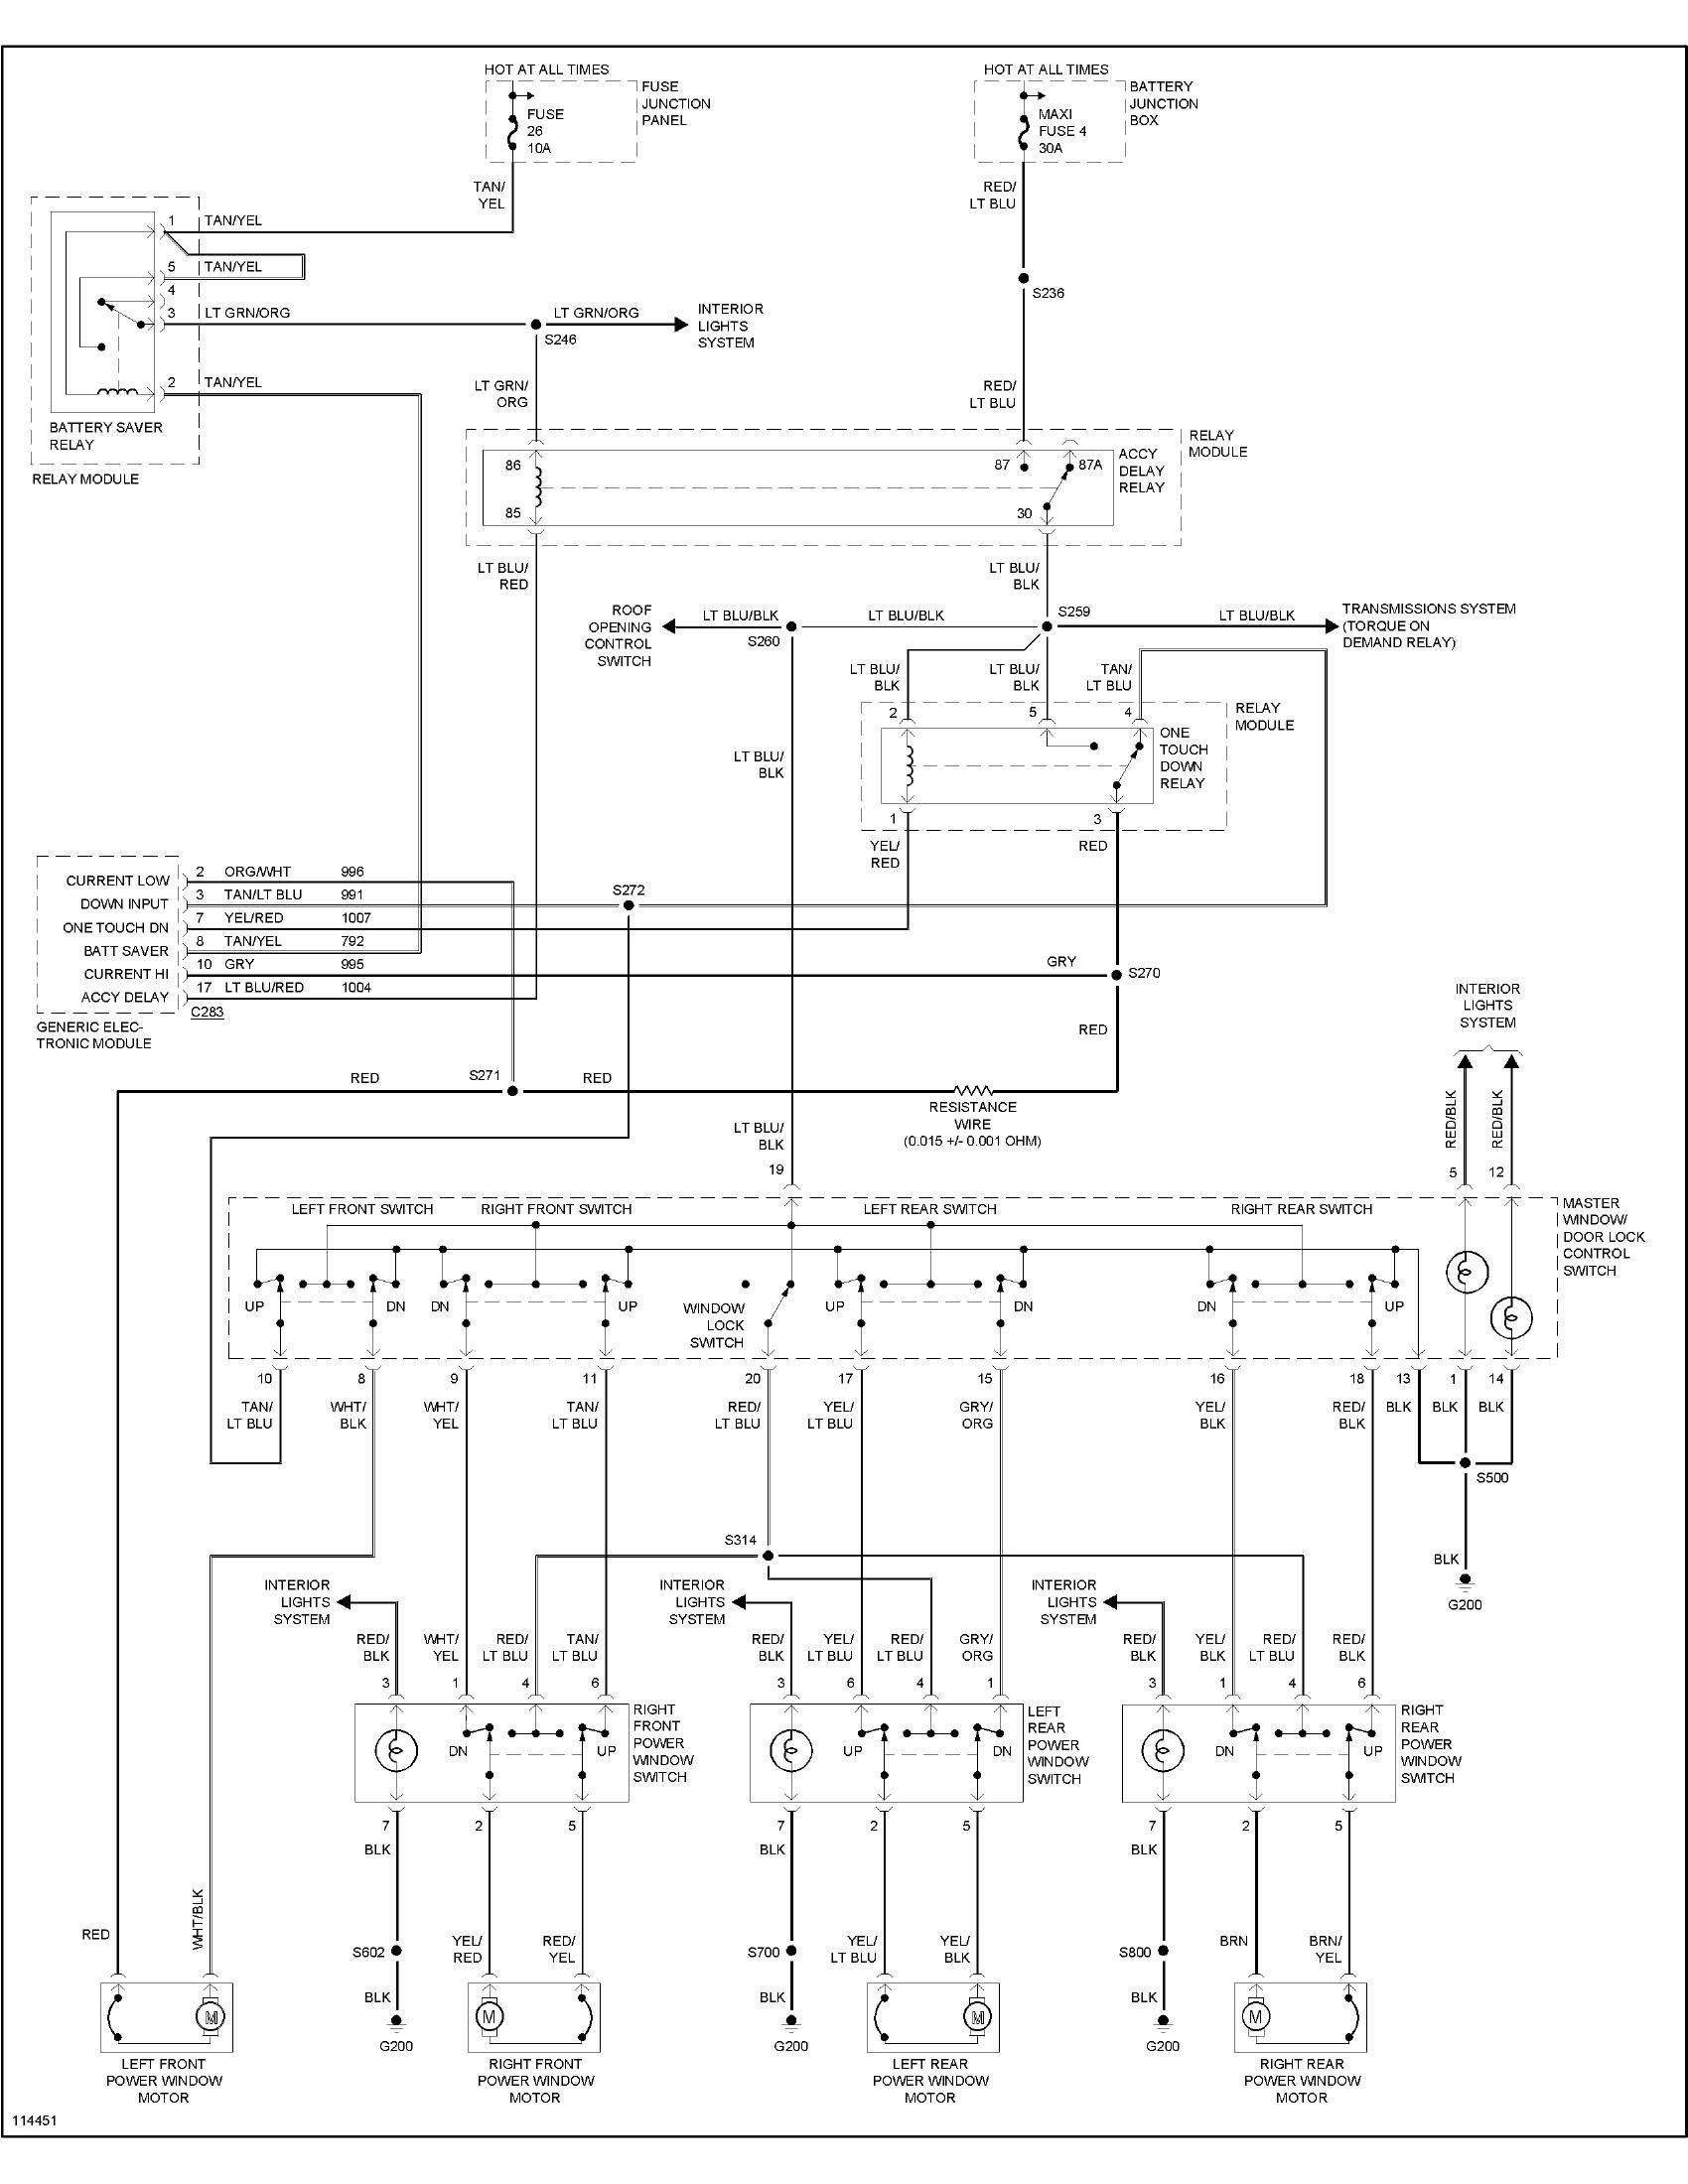 2011 02 13_212255_99_explorer_power_window_diag wiring diagram for 1998 ford explorer 5 0l readingrat net 96 ford explorer wiring diagram at bayanpartner.co